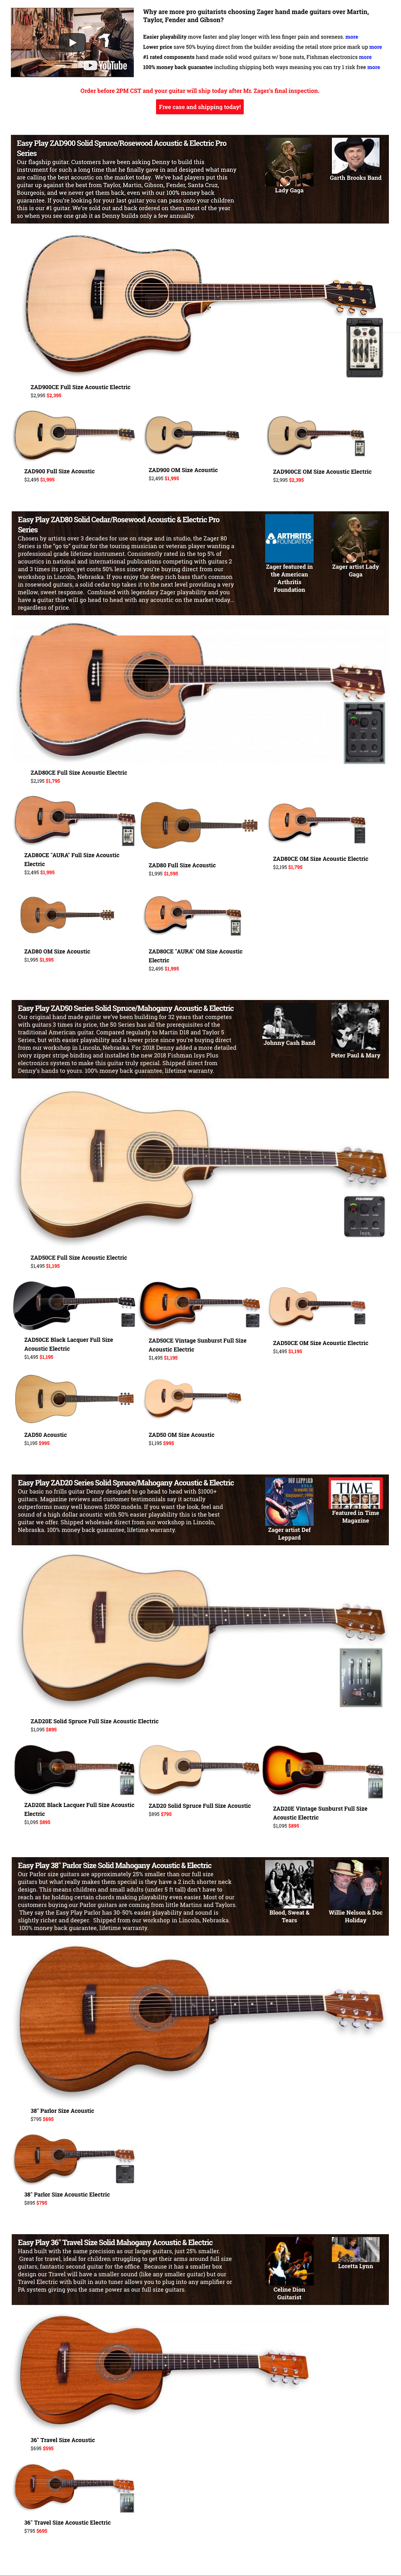 Guitar Giveaway | Zager Guitars